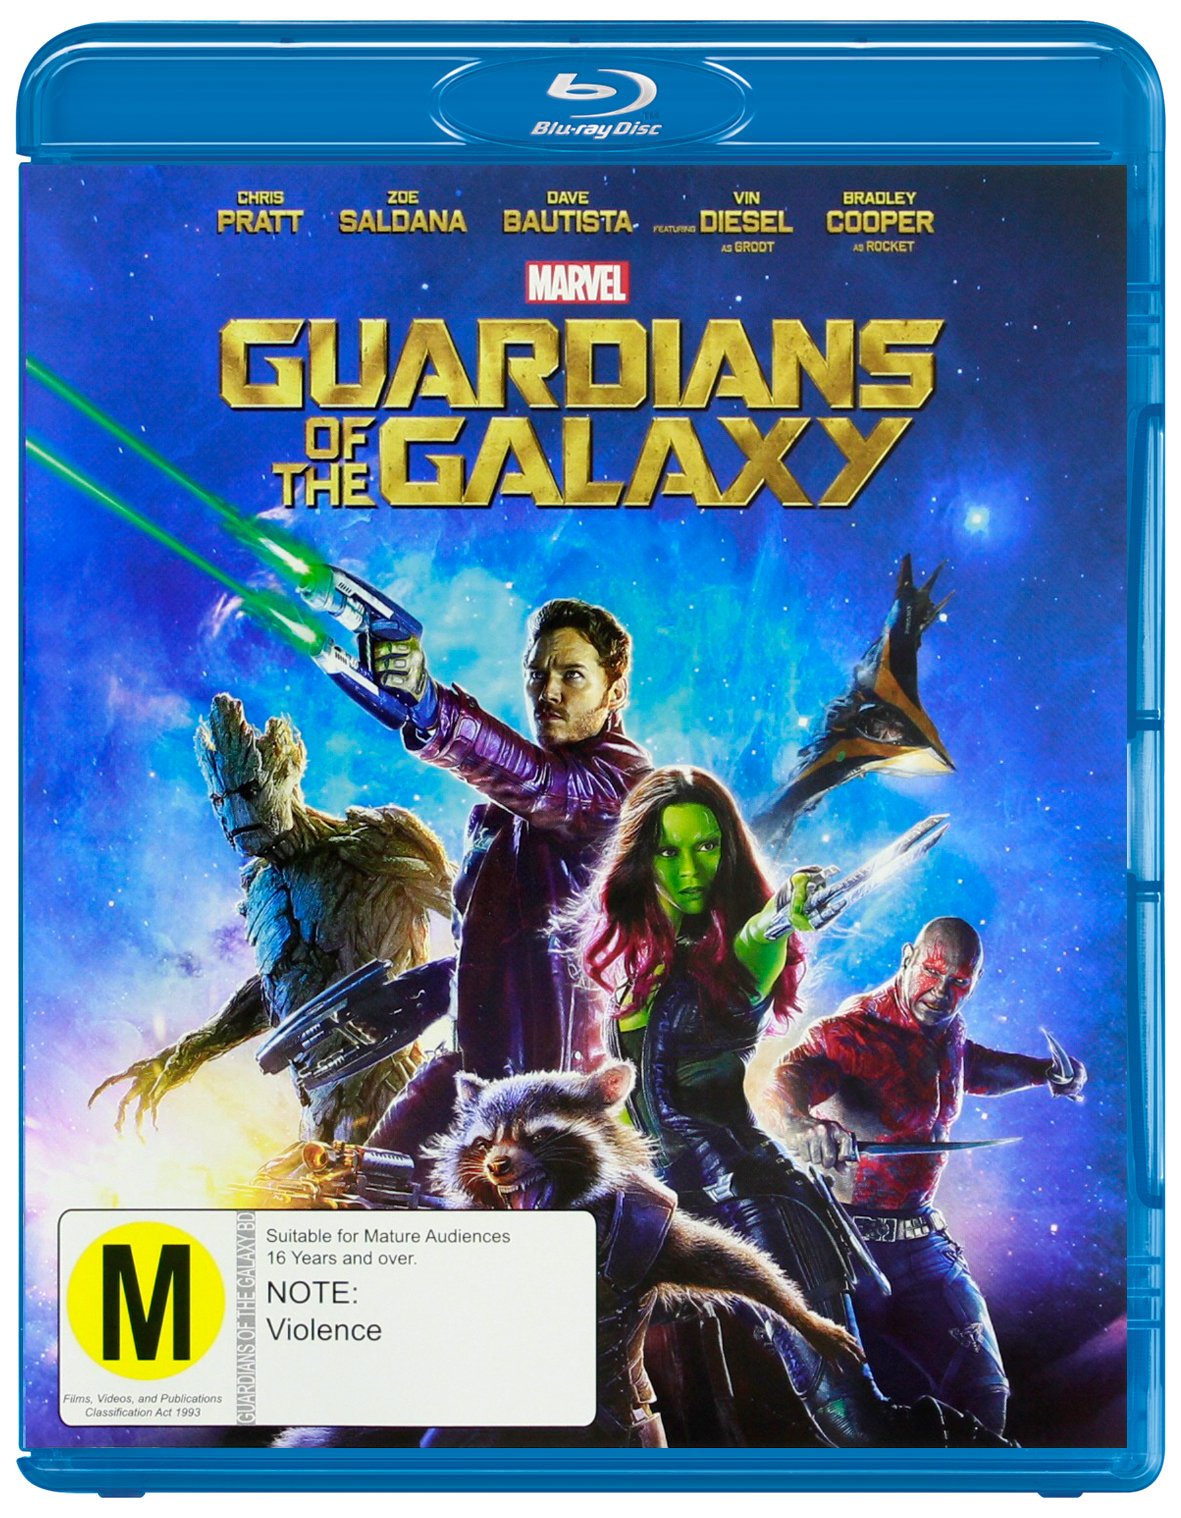 Guardians of the Galaxy on Blu-ray image